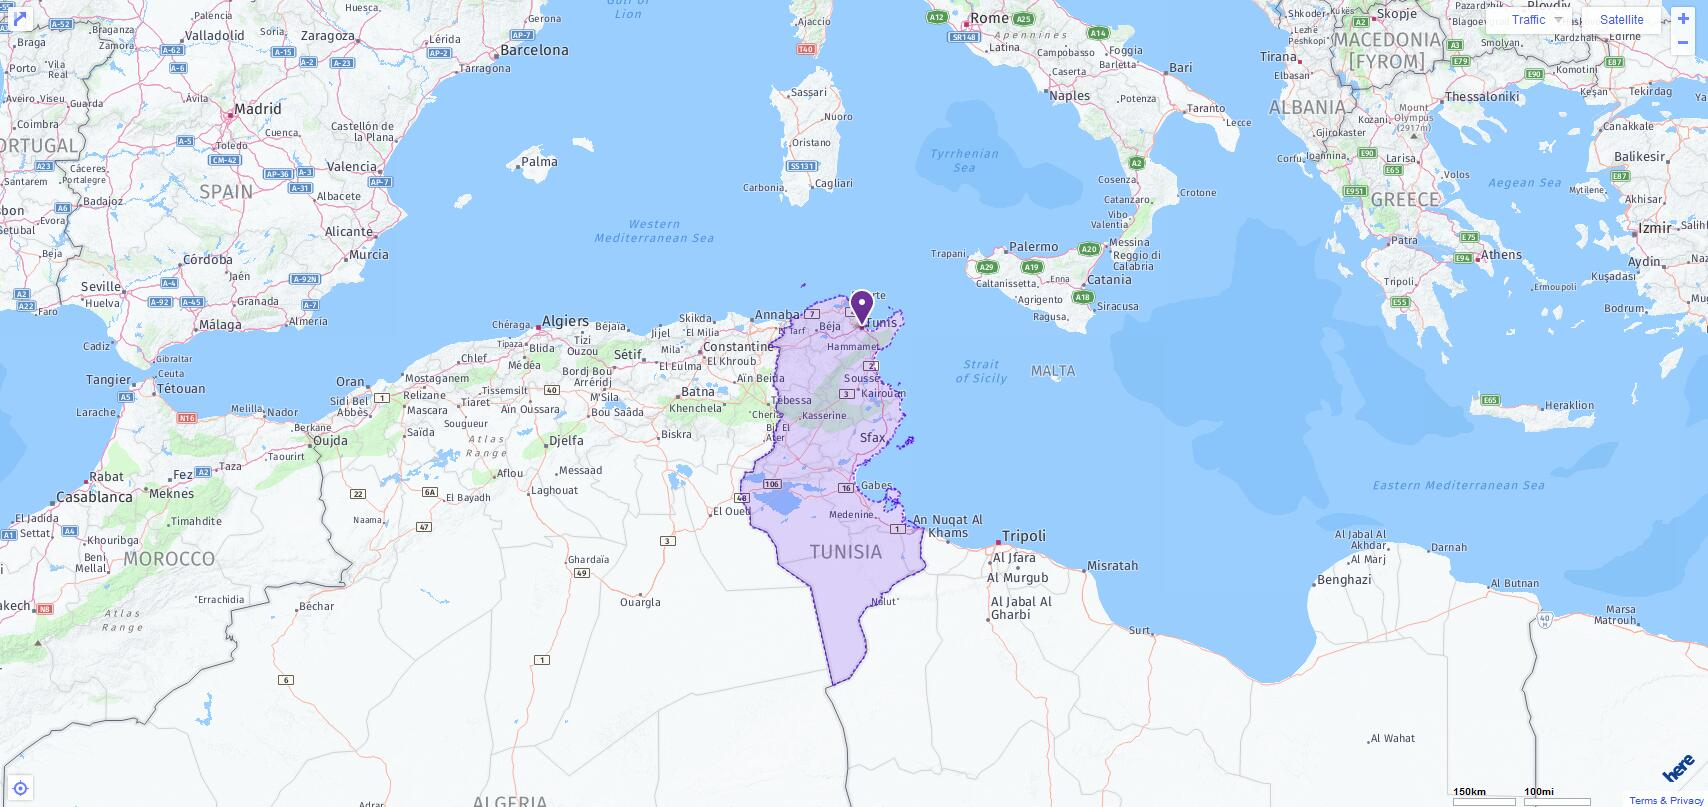 ACT Test Centers and Dates in Tunisia